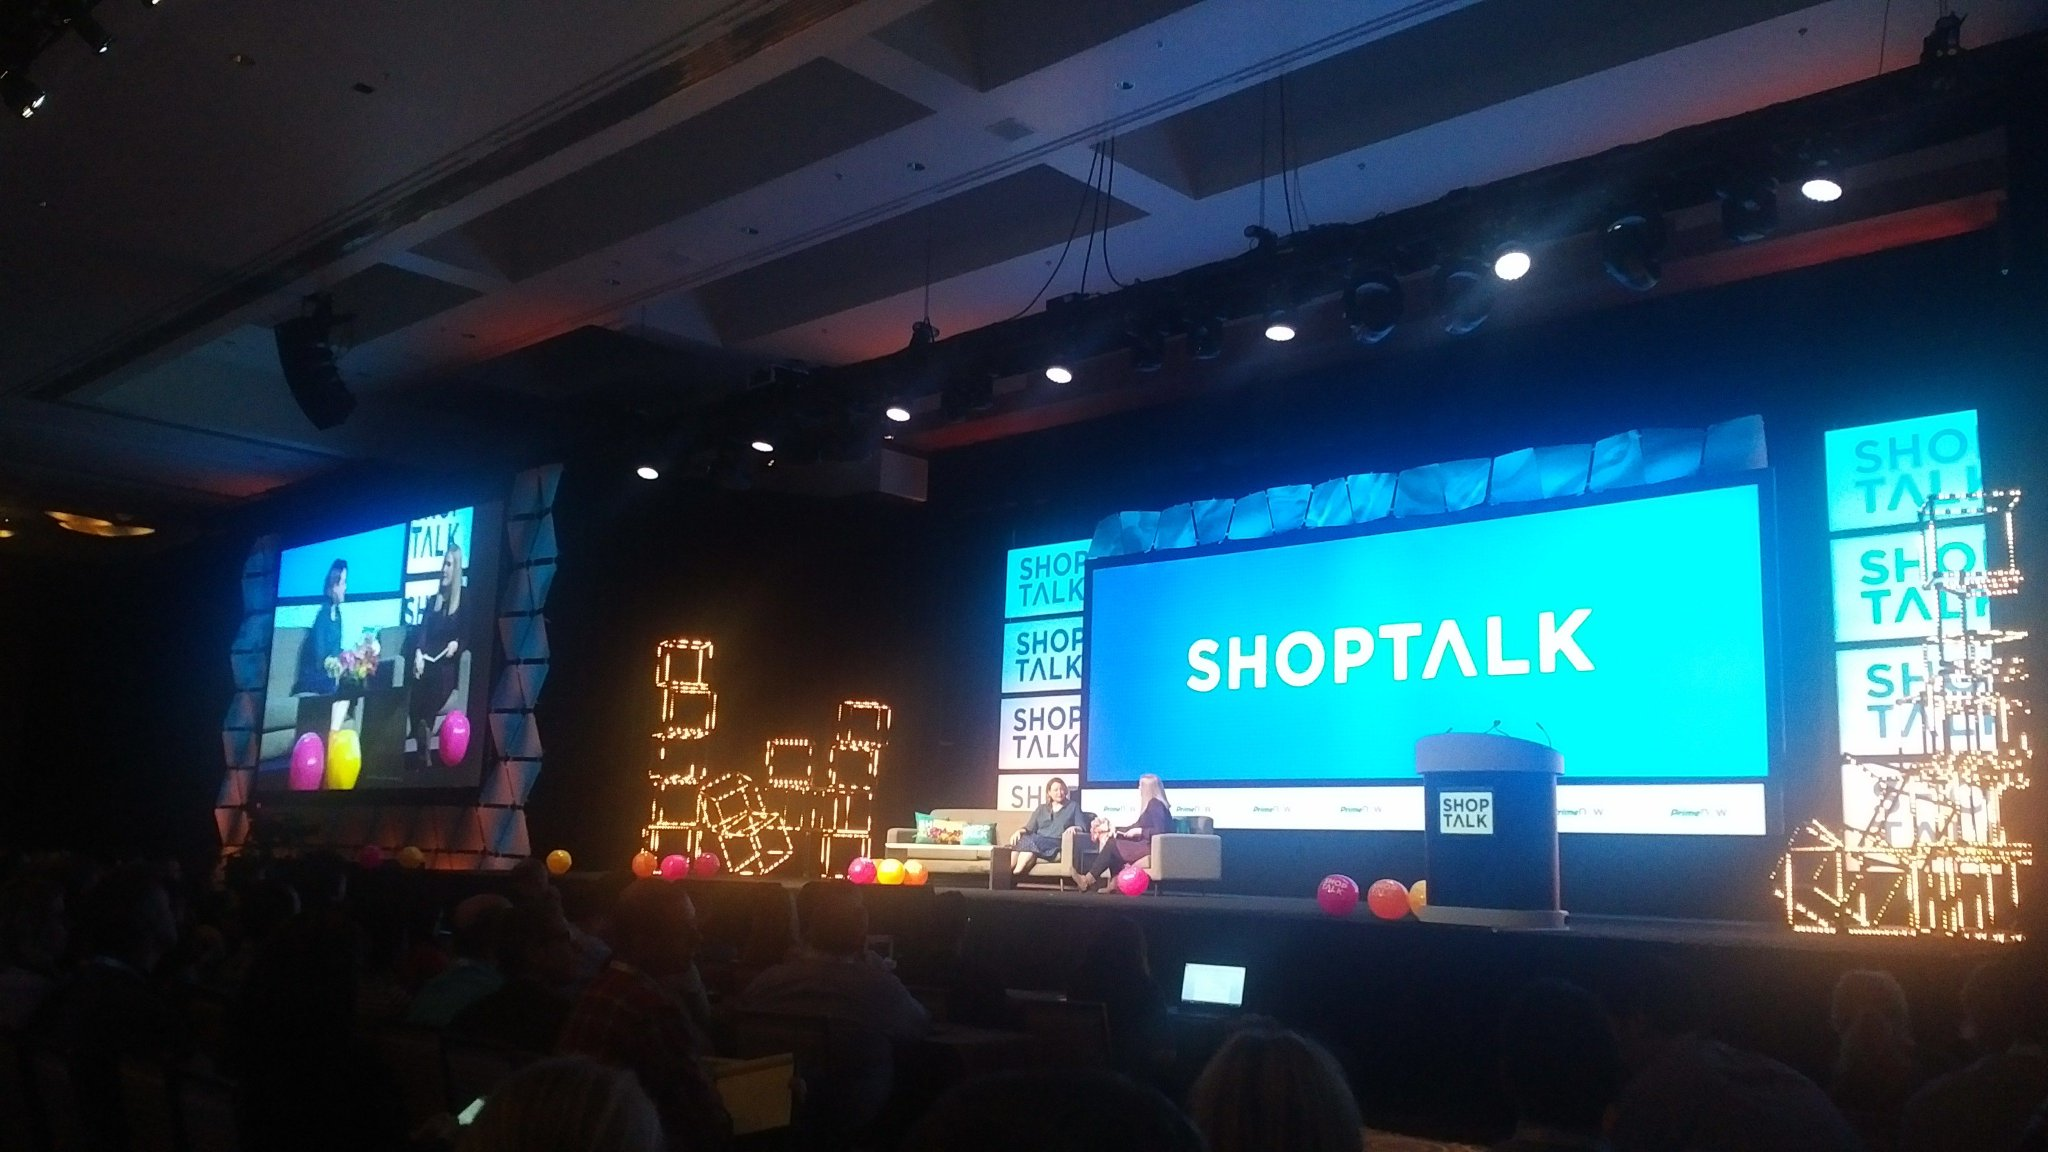 #Shoptalk17 Day One Learnings,  ultra fast eCommerce is an expensive proposition, but you have to be in the game to learn how to do it well. https://t.co/VvZ9zv8P2H